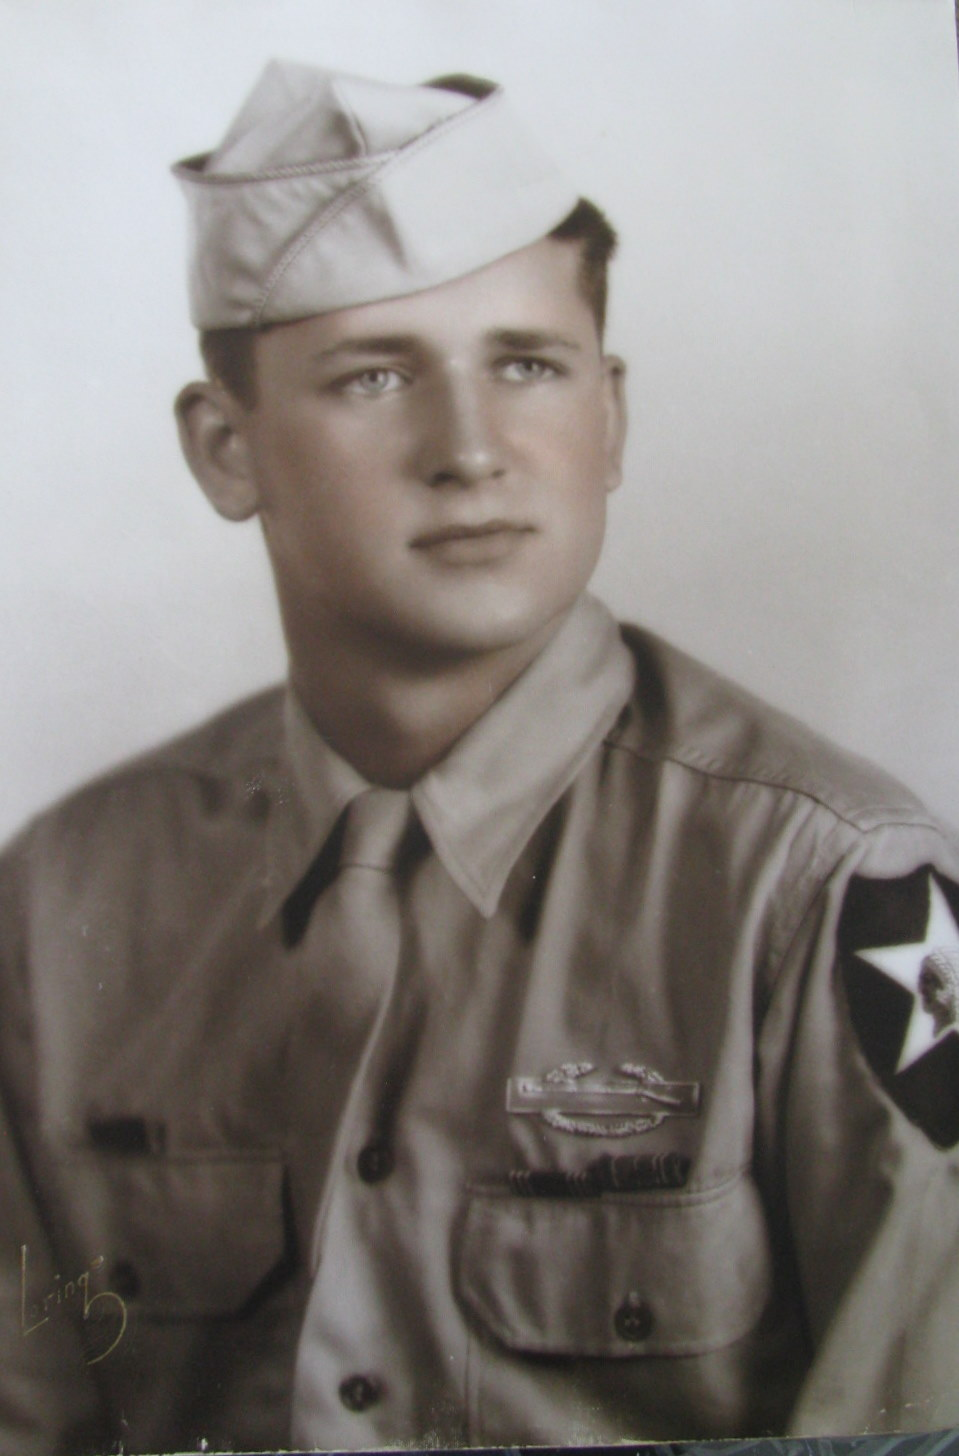 Pfc  Harold Snyder served in 2nd Division of Pattons's 3rd